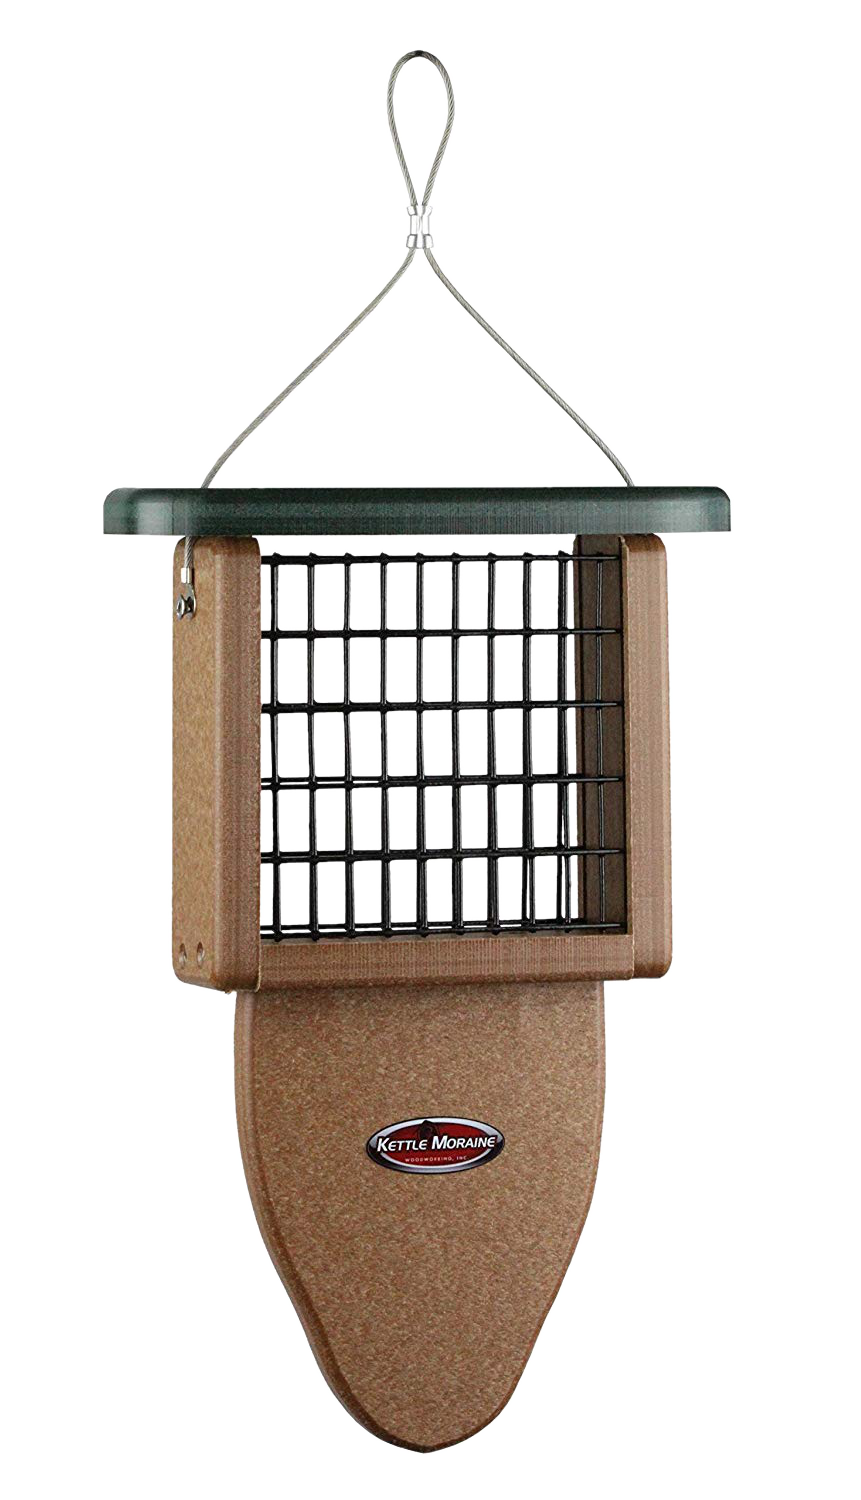 single kettle moraine recycled suet feeder with tail prop